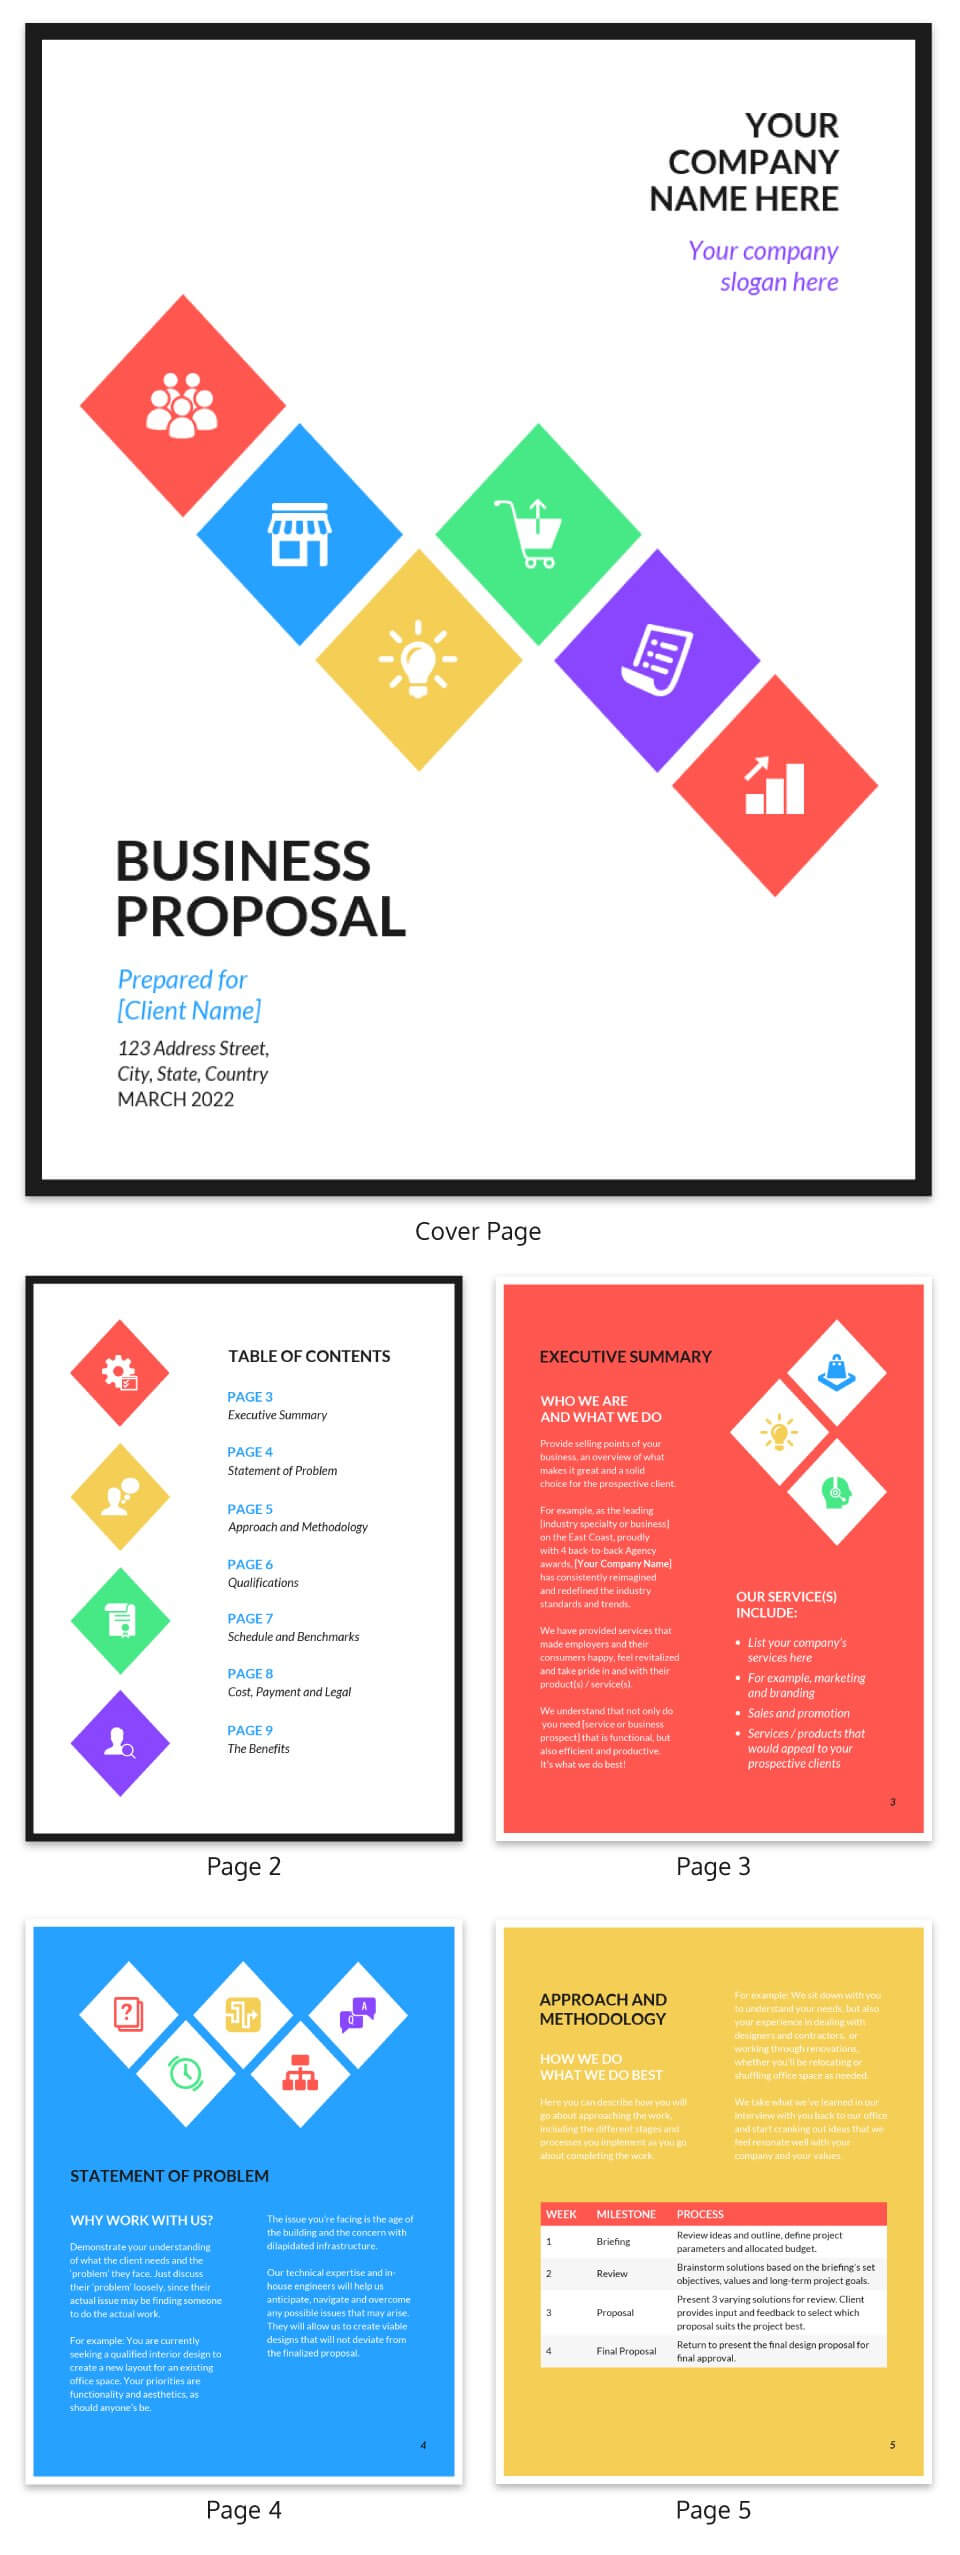 30+ Business Report Templates Every Business Needs – Venngage Within Business Process Narrative Template